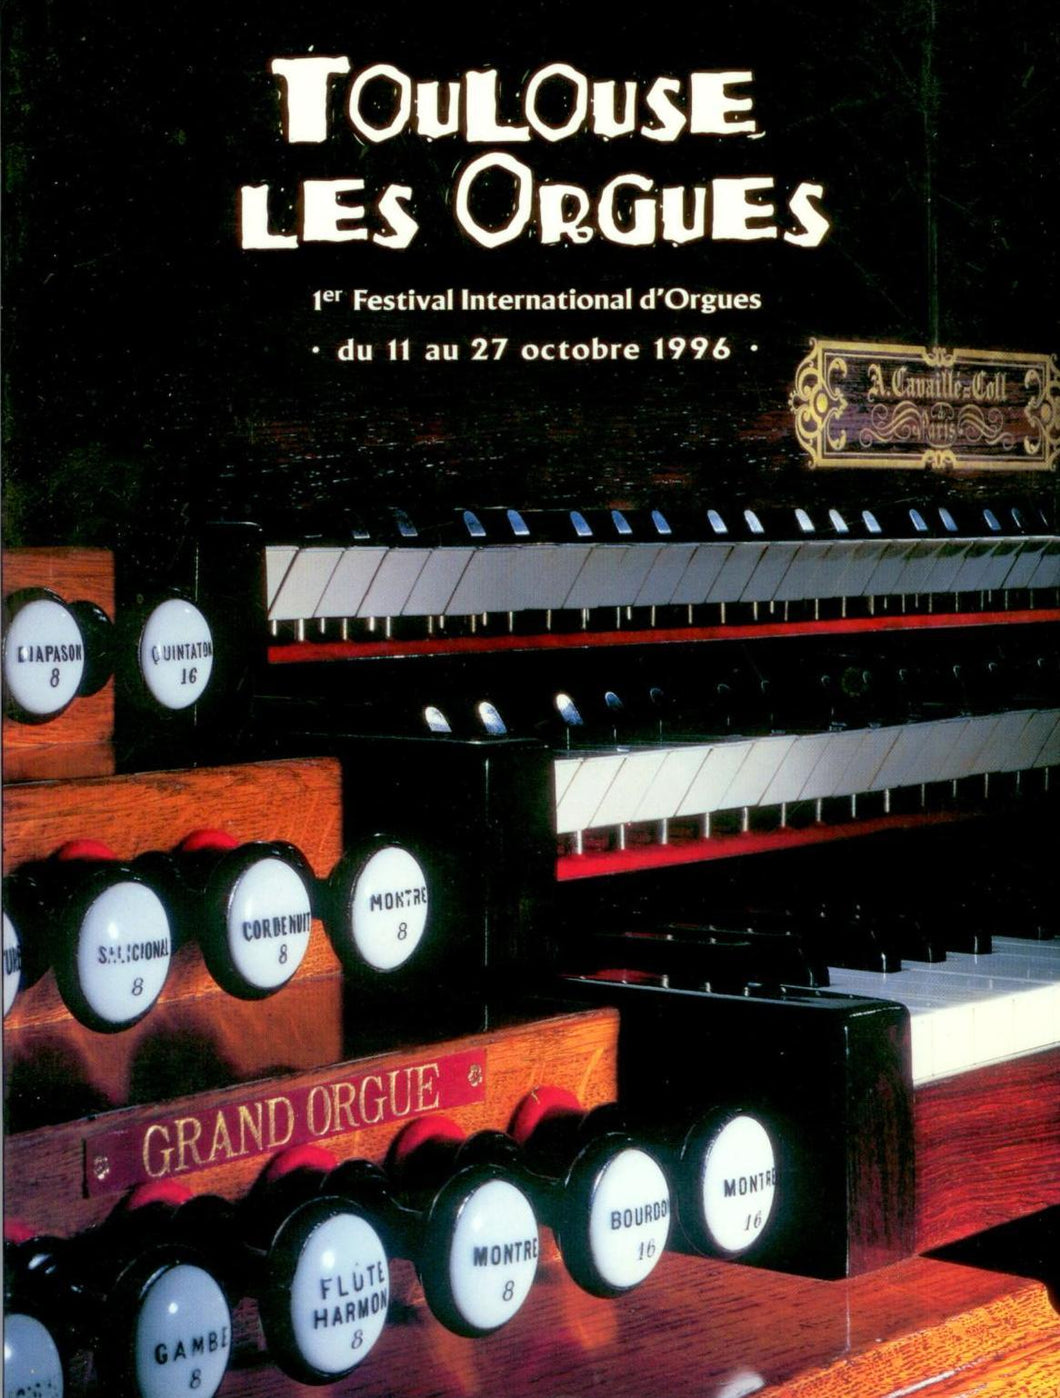 Toulouse Les Orgues: 1er Festival International d'Orgues du 11 au 27 octobre 1996